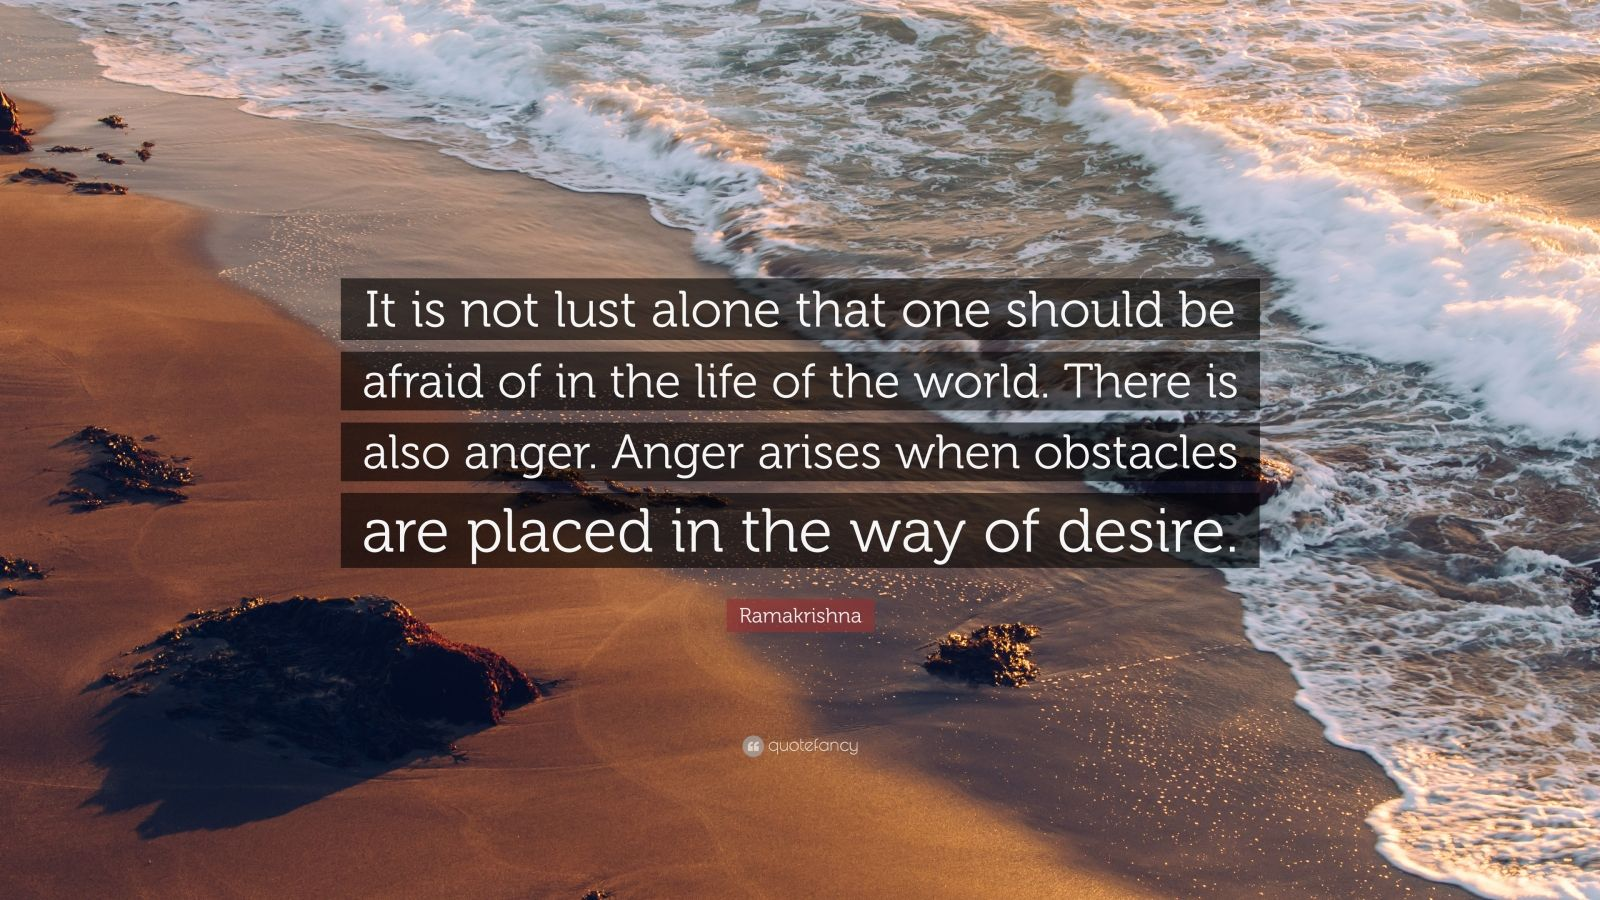 """Ramakrishna Quote: """"It is not lust alone that one should be afraid of in the life of the world. There is also anger. Anger arises when obstacles are placed in the way of desire."""""""